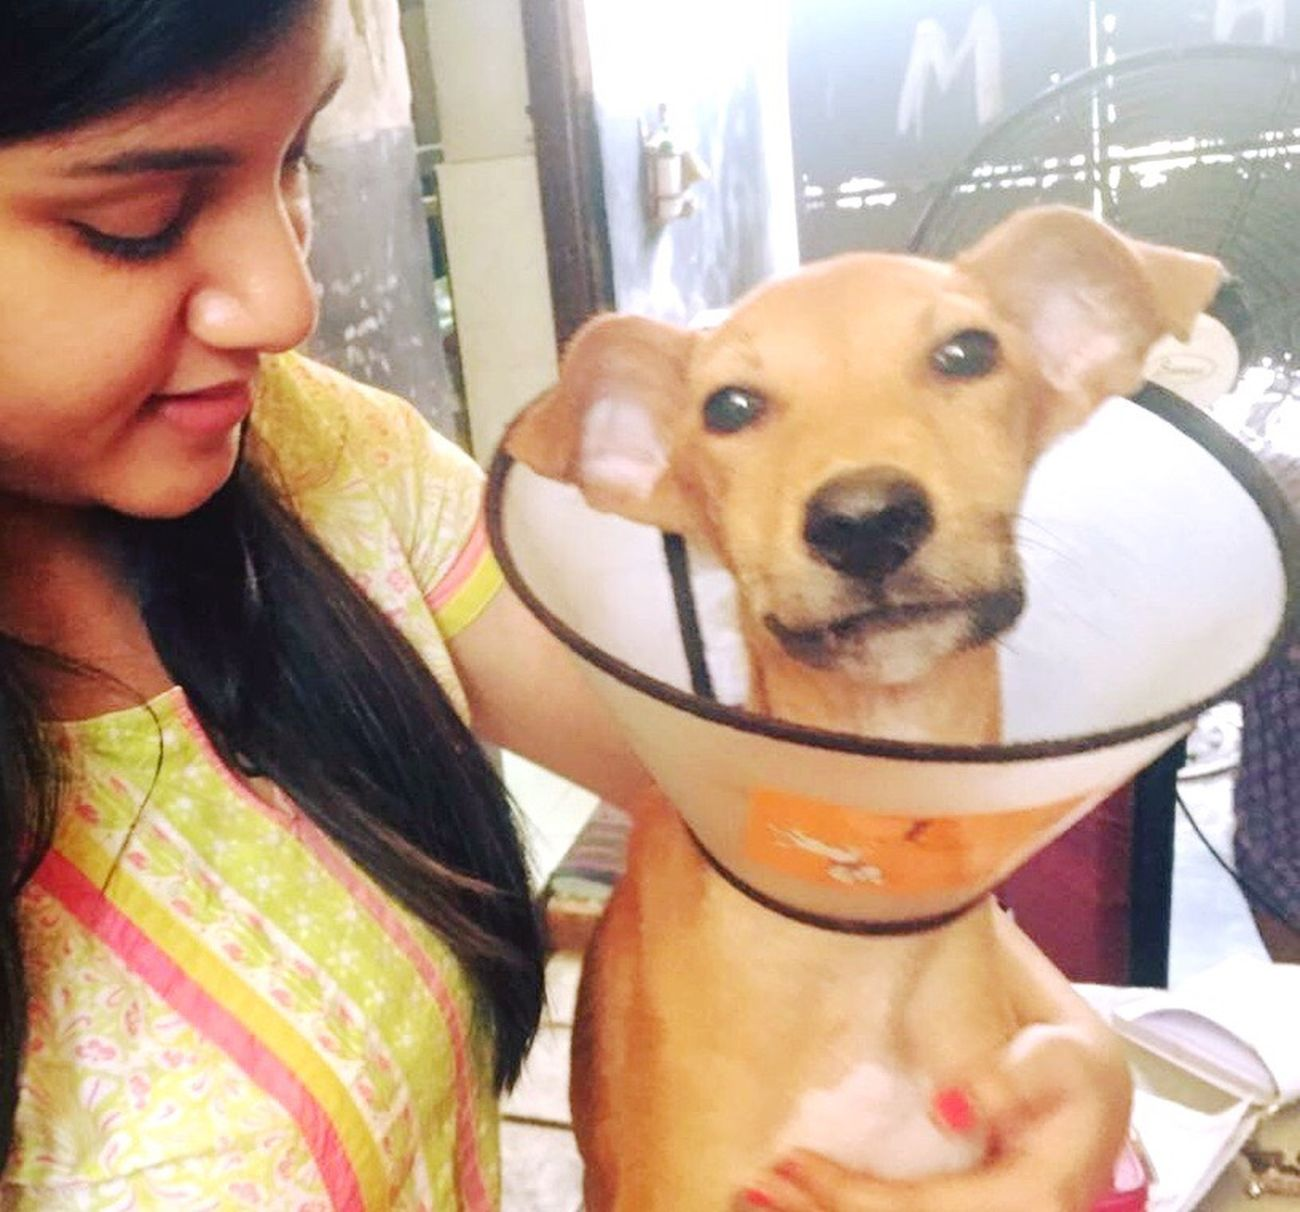 Halo underwent surgical fixation of his broken jaw with metal implants. After hours of painful surgery, he woke up and Smiled Rescue Pup DogLove